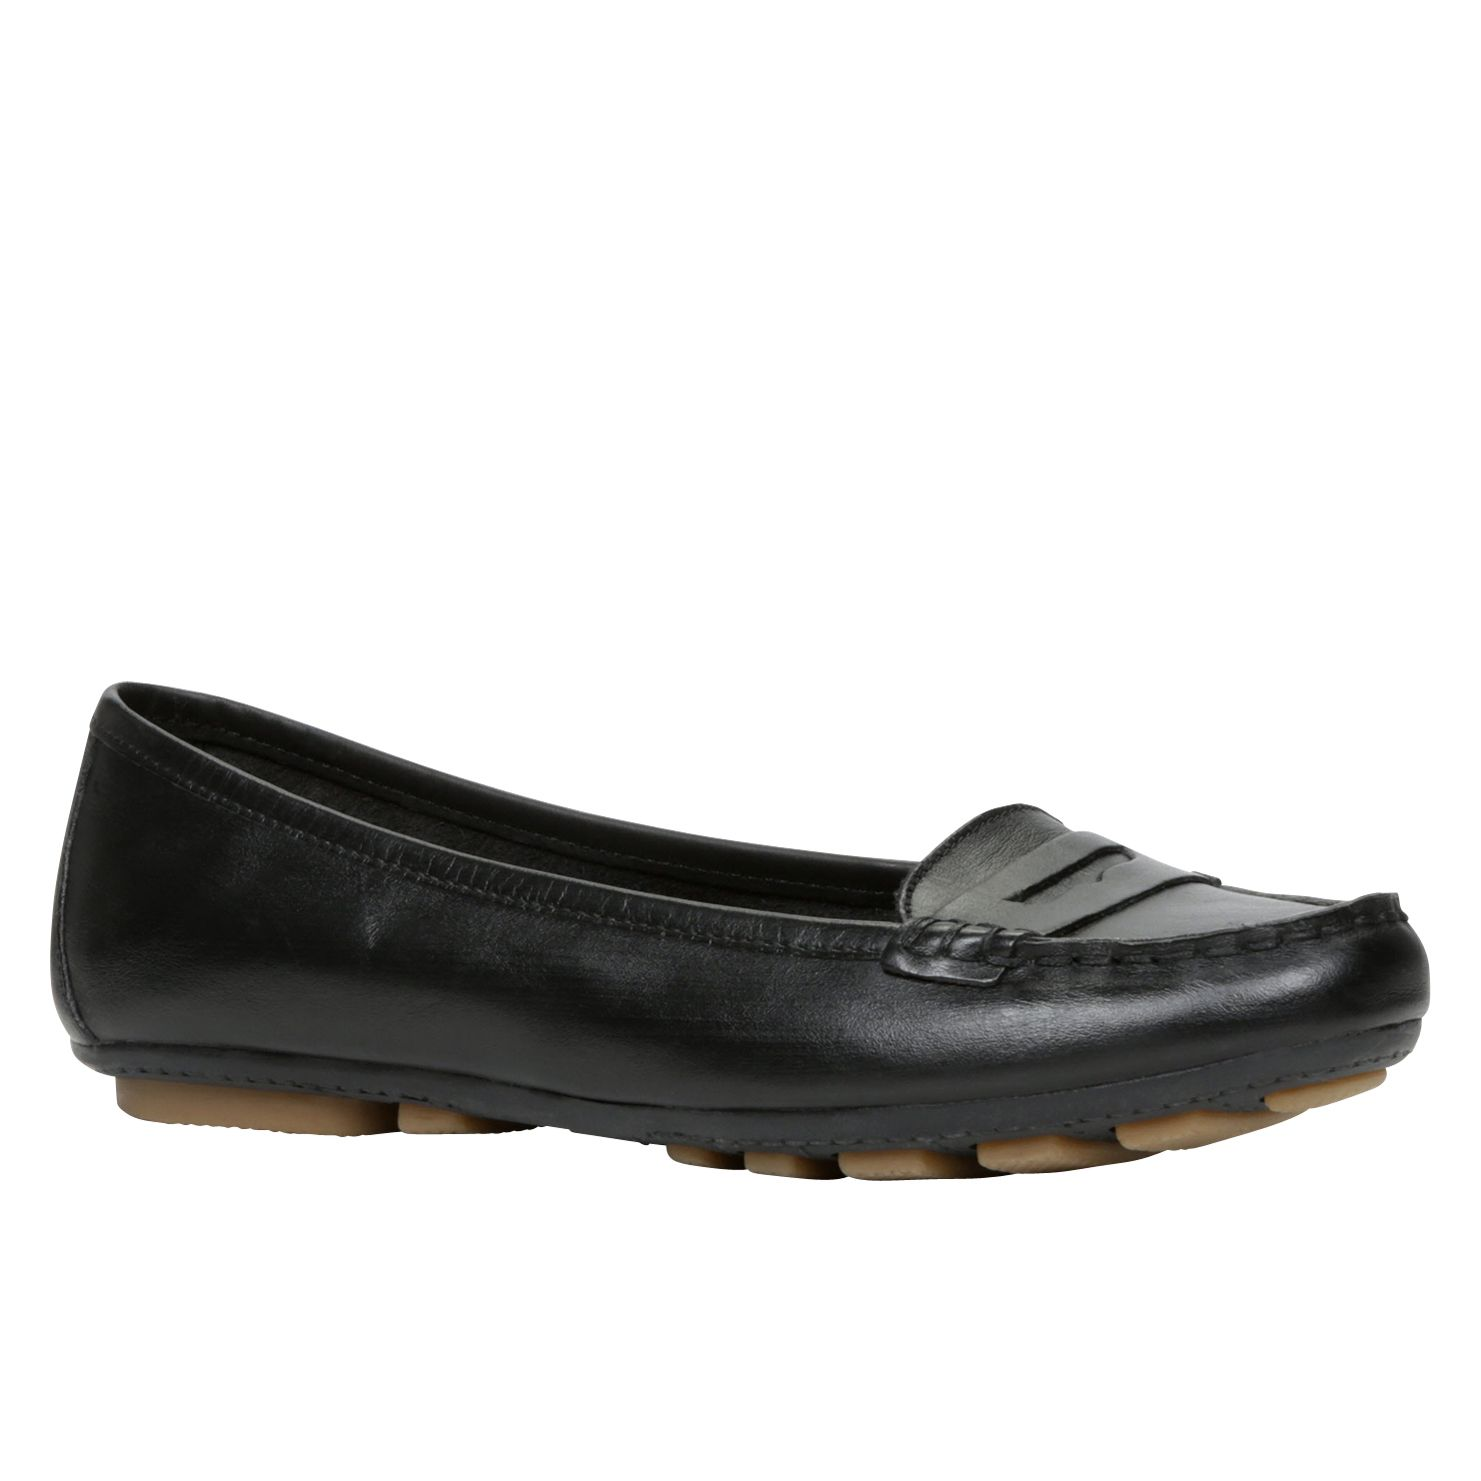 Kata round toe loafer shoes